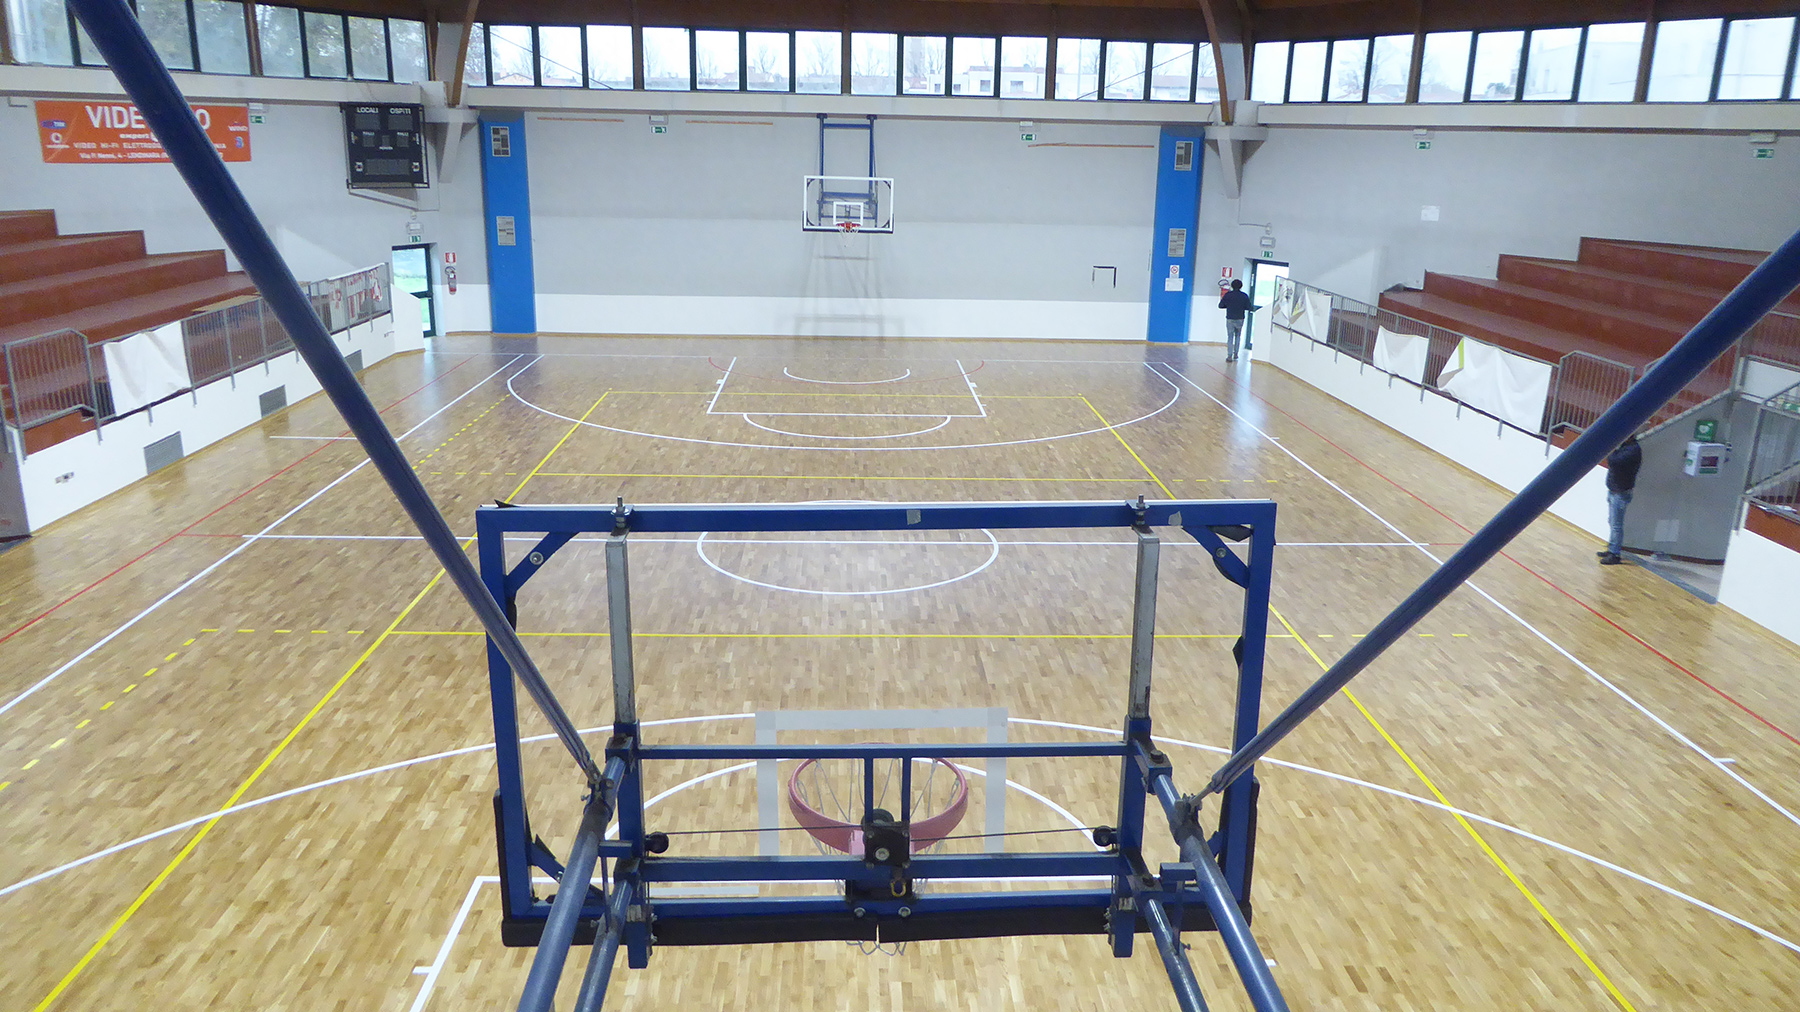 The Lendinarese companies are ready to play on a parquet designed by Dalla Riva